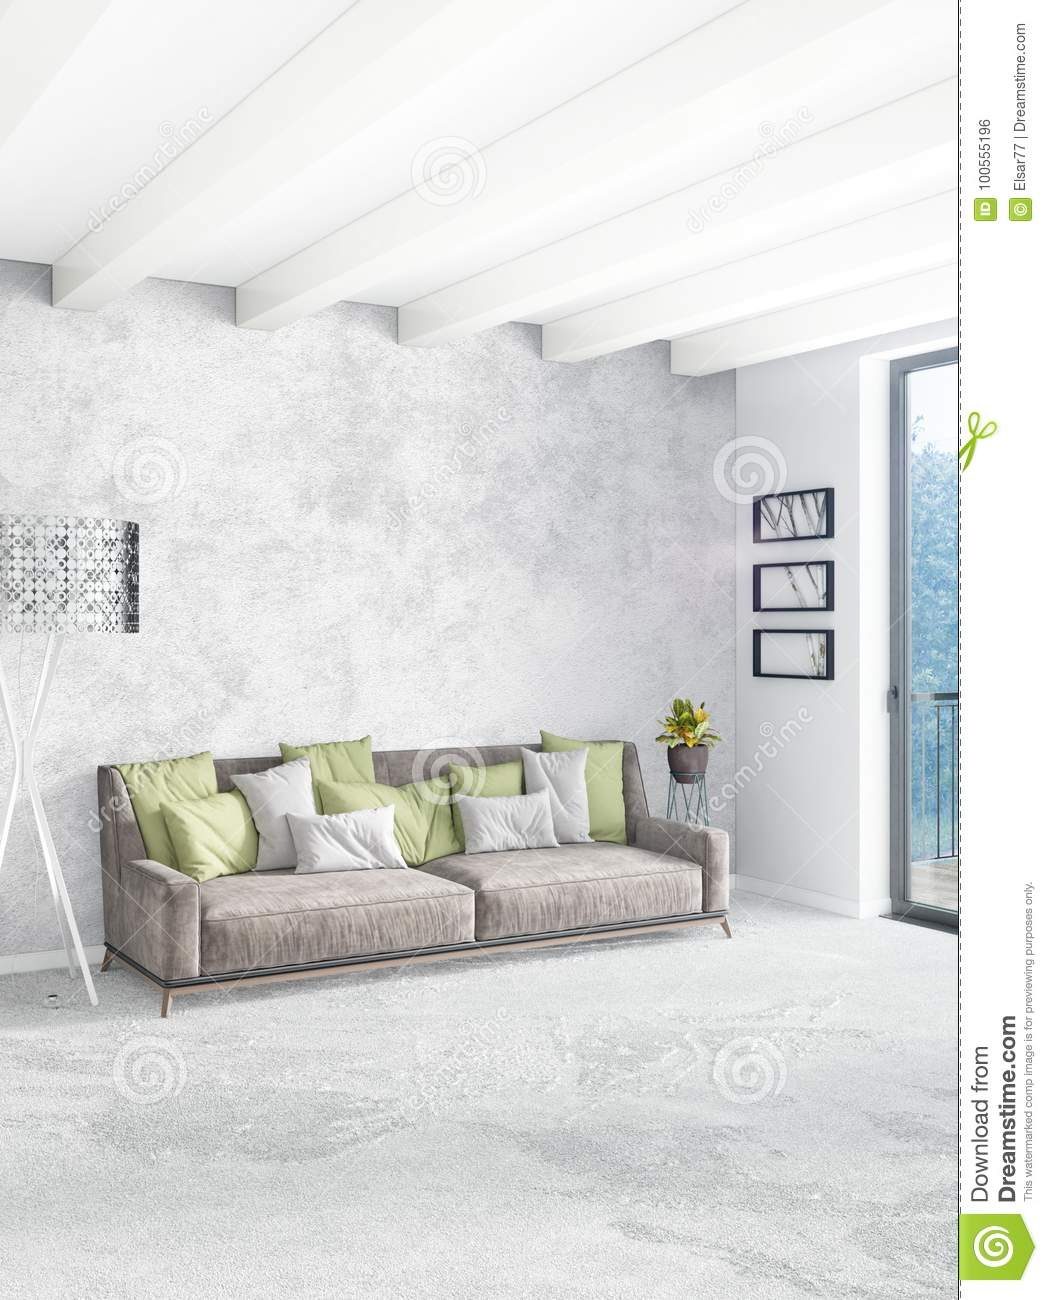 minimal sofa design ikea rp bed covers 2 seater white bedroom style interior with wood wall and grey 3d rendering